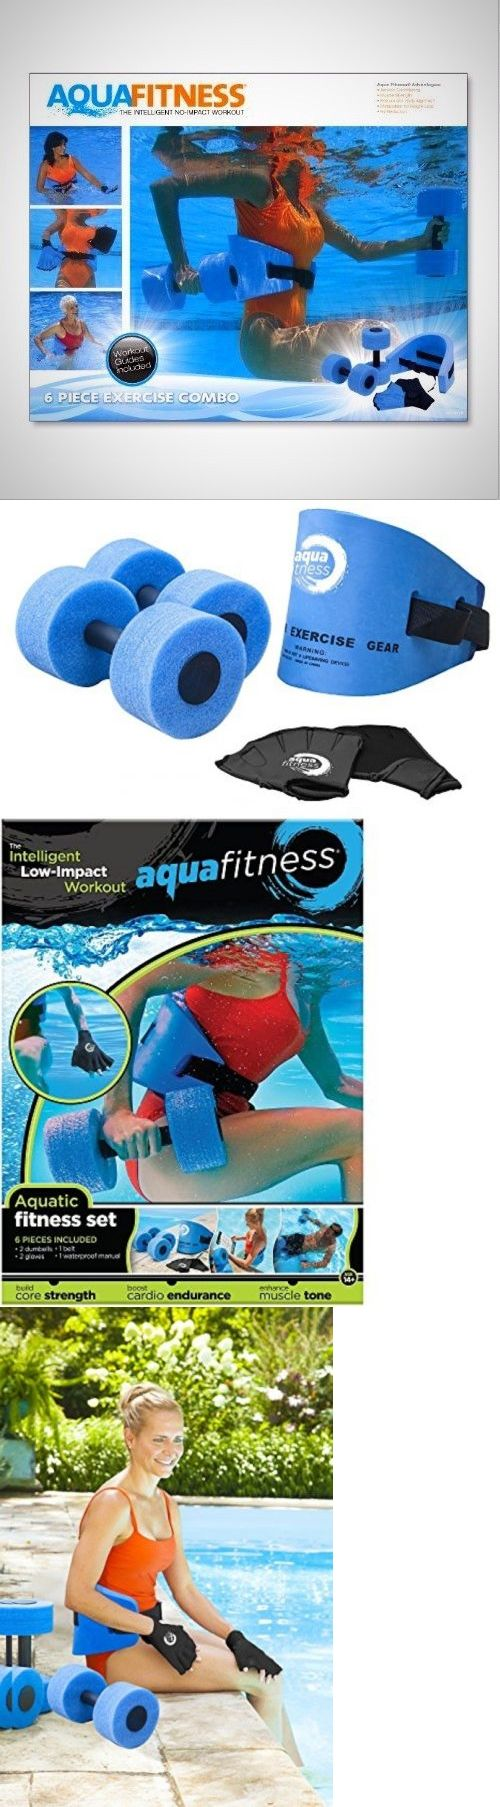 Aquatic Fitness Equipment 158922: Aqua Fitness Exercise Set 6 Piece Water Exercise Aerobic Belt Barbells Pool Gym -> BUY IT NOW ONLY: $35.97 on eBay!